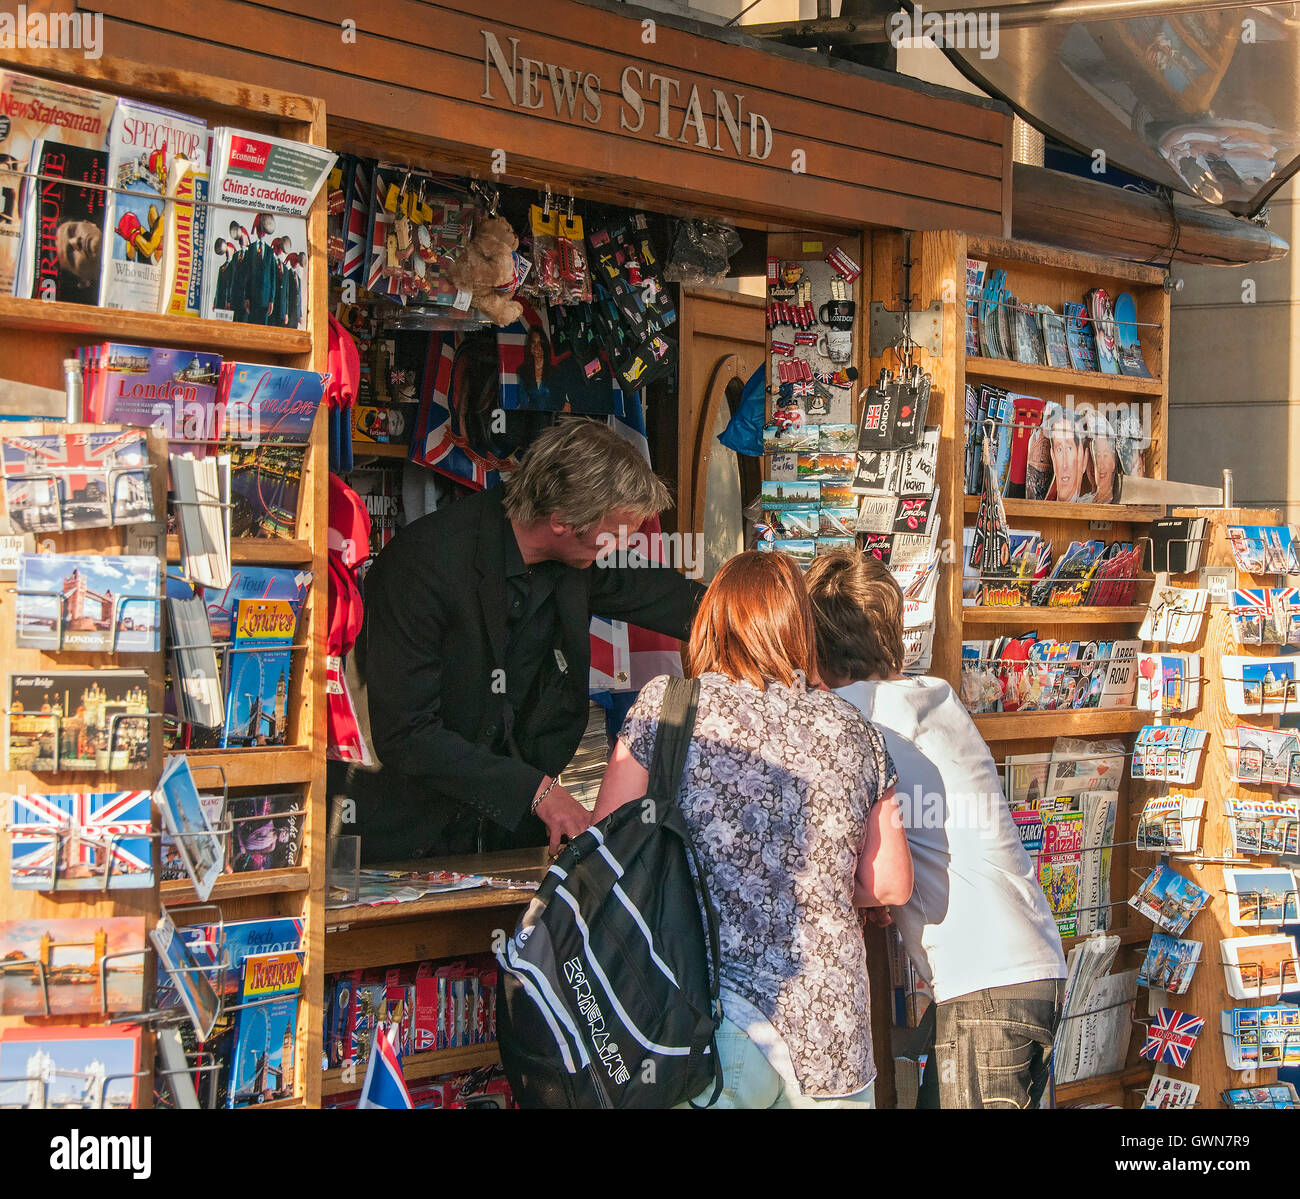 Customers at a News Stand in Westminster, London, England, UK - Stock Image